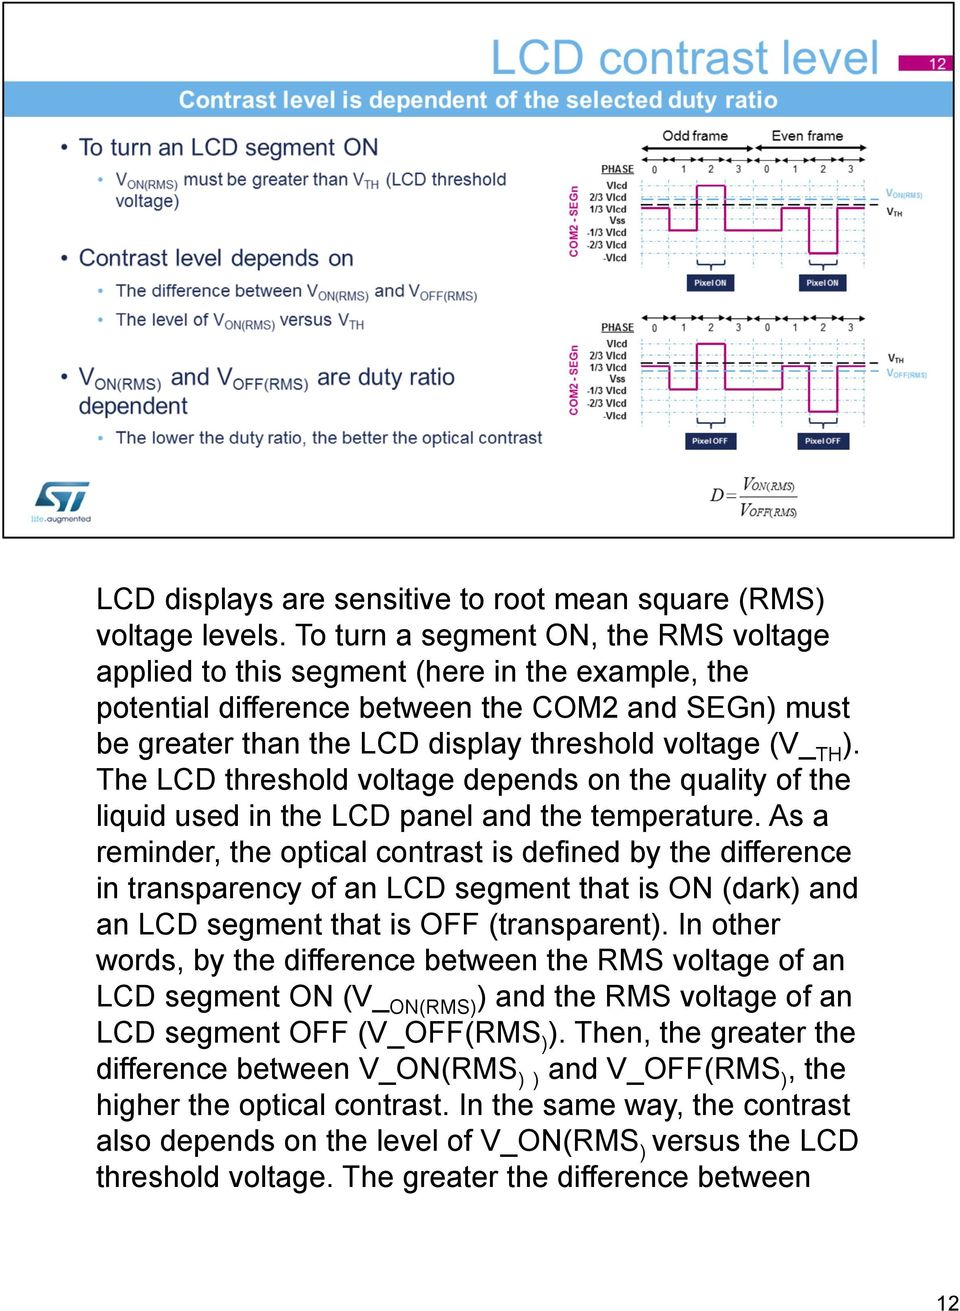 The LCD threshold voltage depends on the quality of the liquid used in the LCD panel and the temperature.